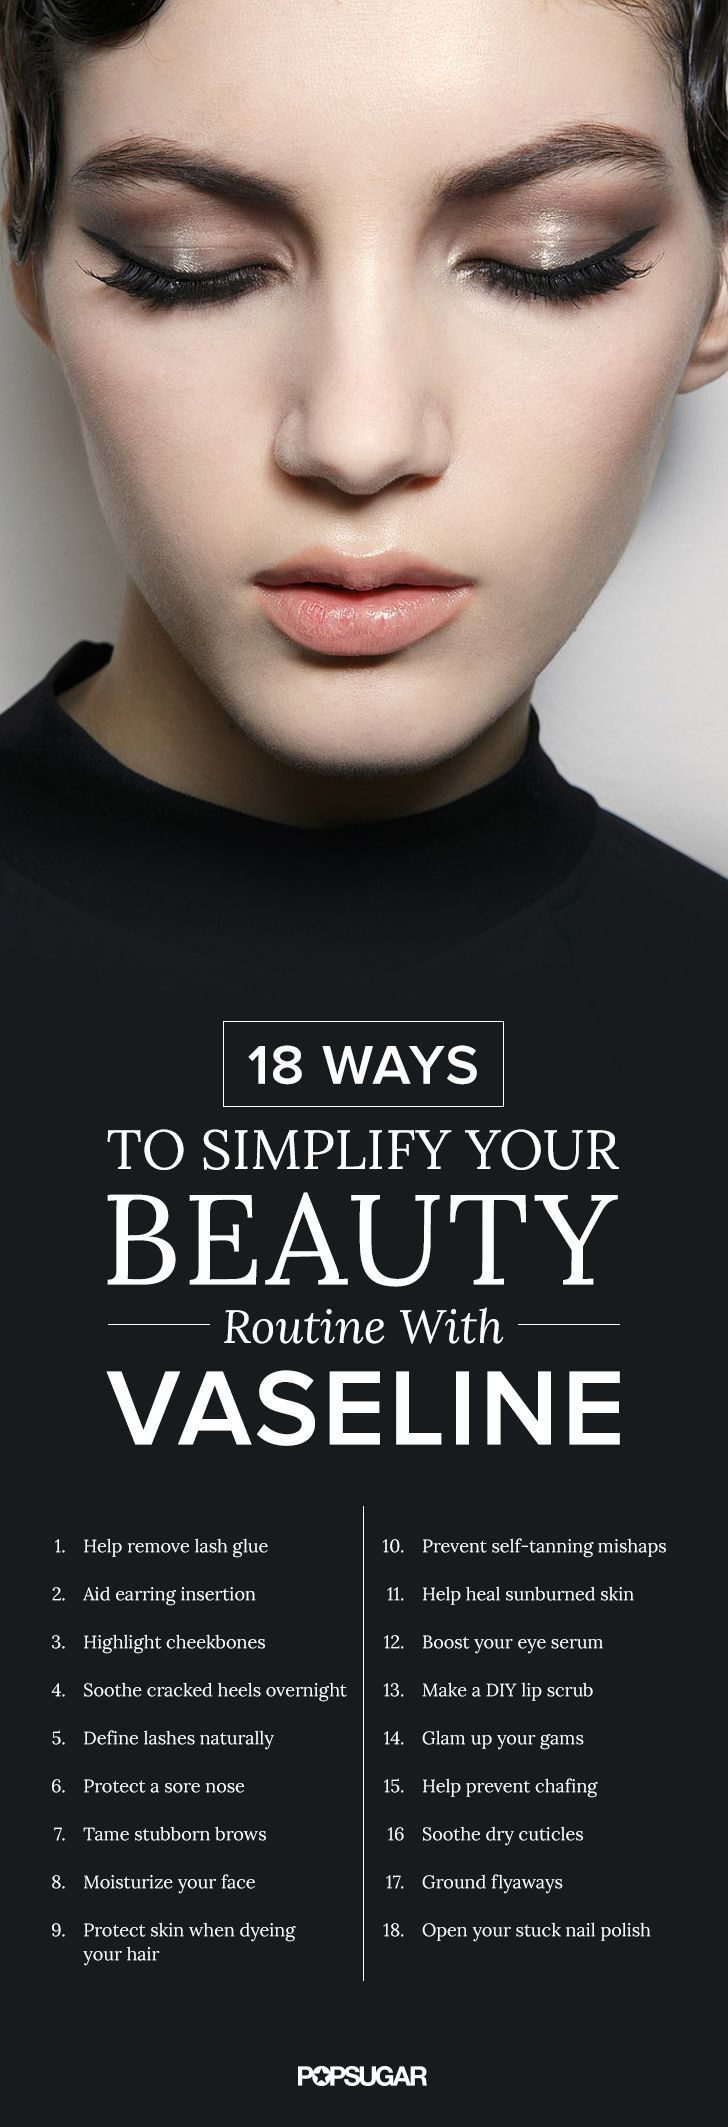 All your beauty problems can be solved with Vaseline. Try one of these beauty hacks to make your life easier! From hydrating skin to taming hair and everything in between, these tips are totally life changing.